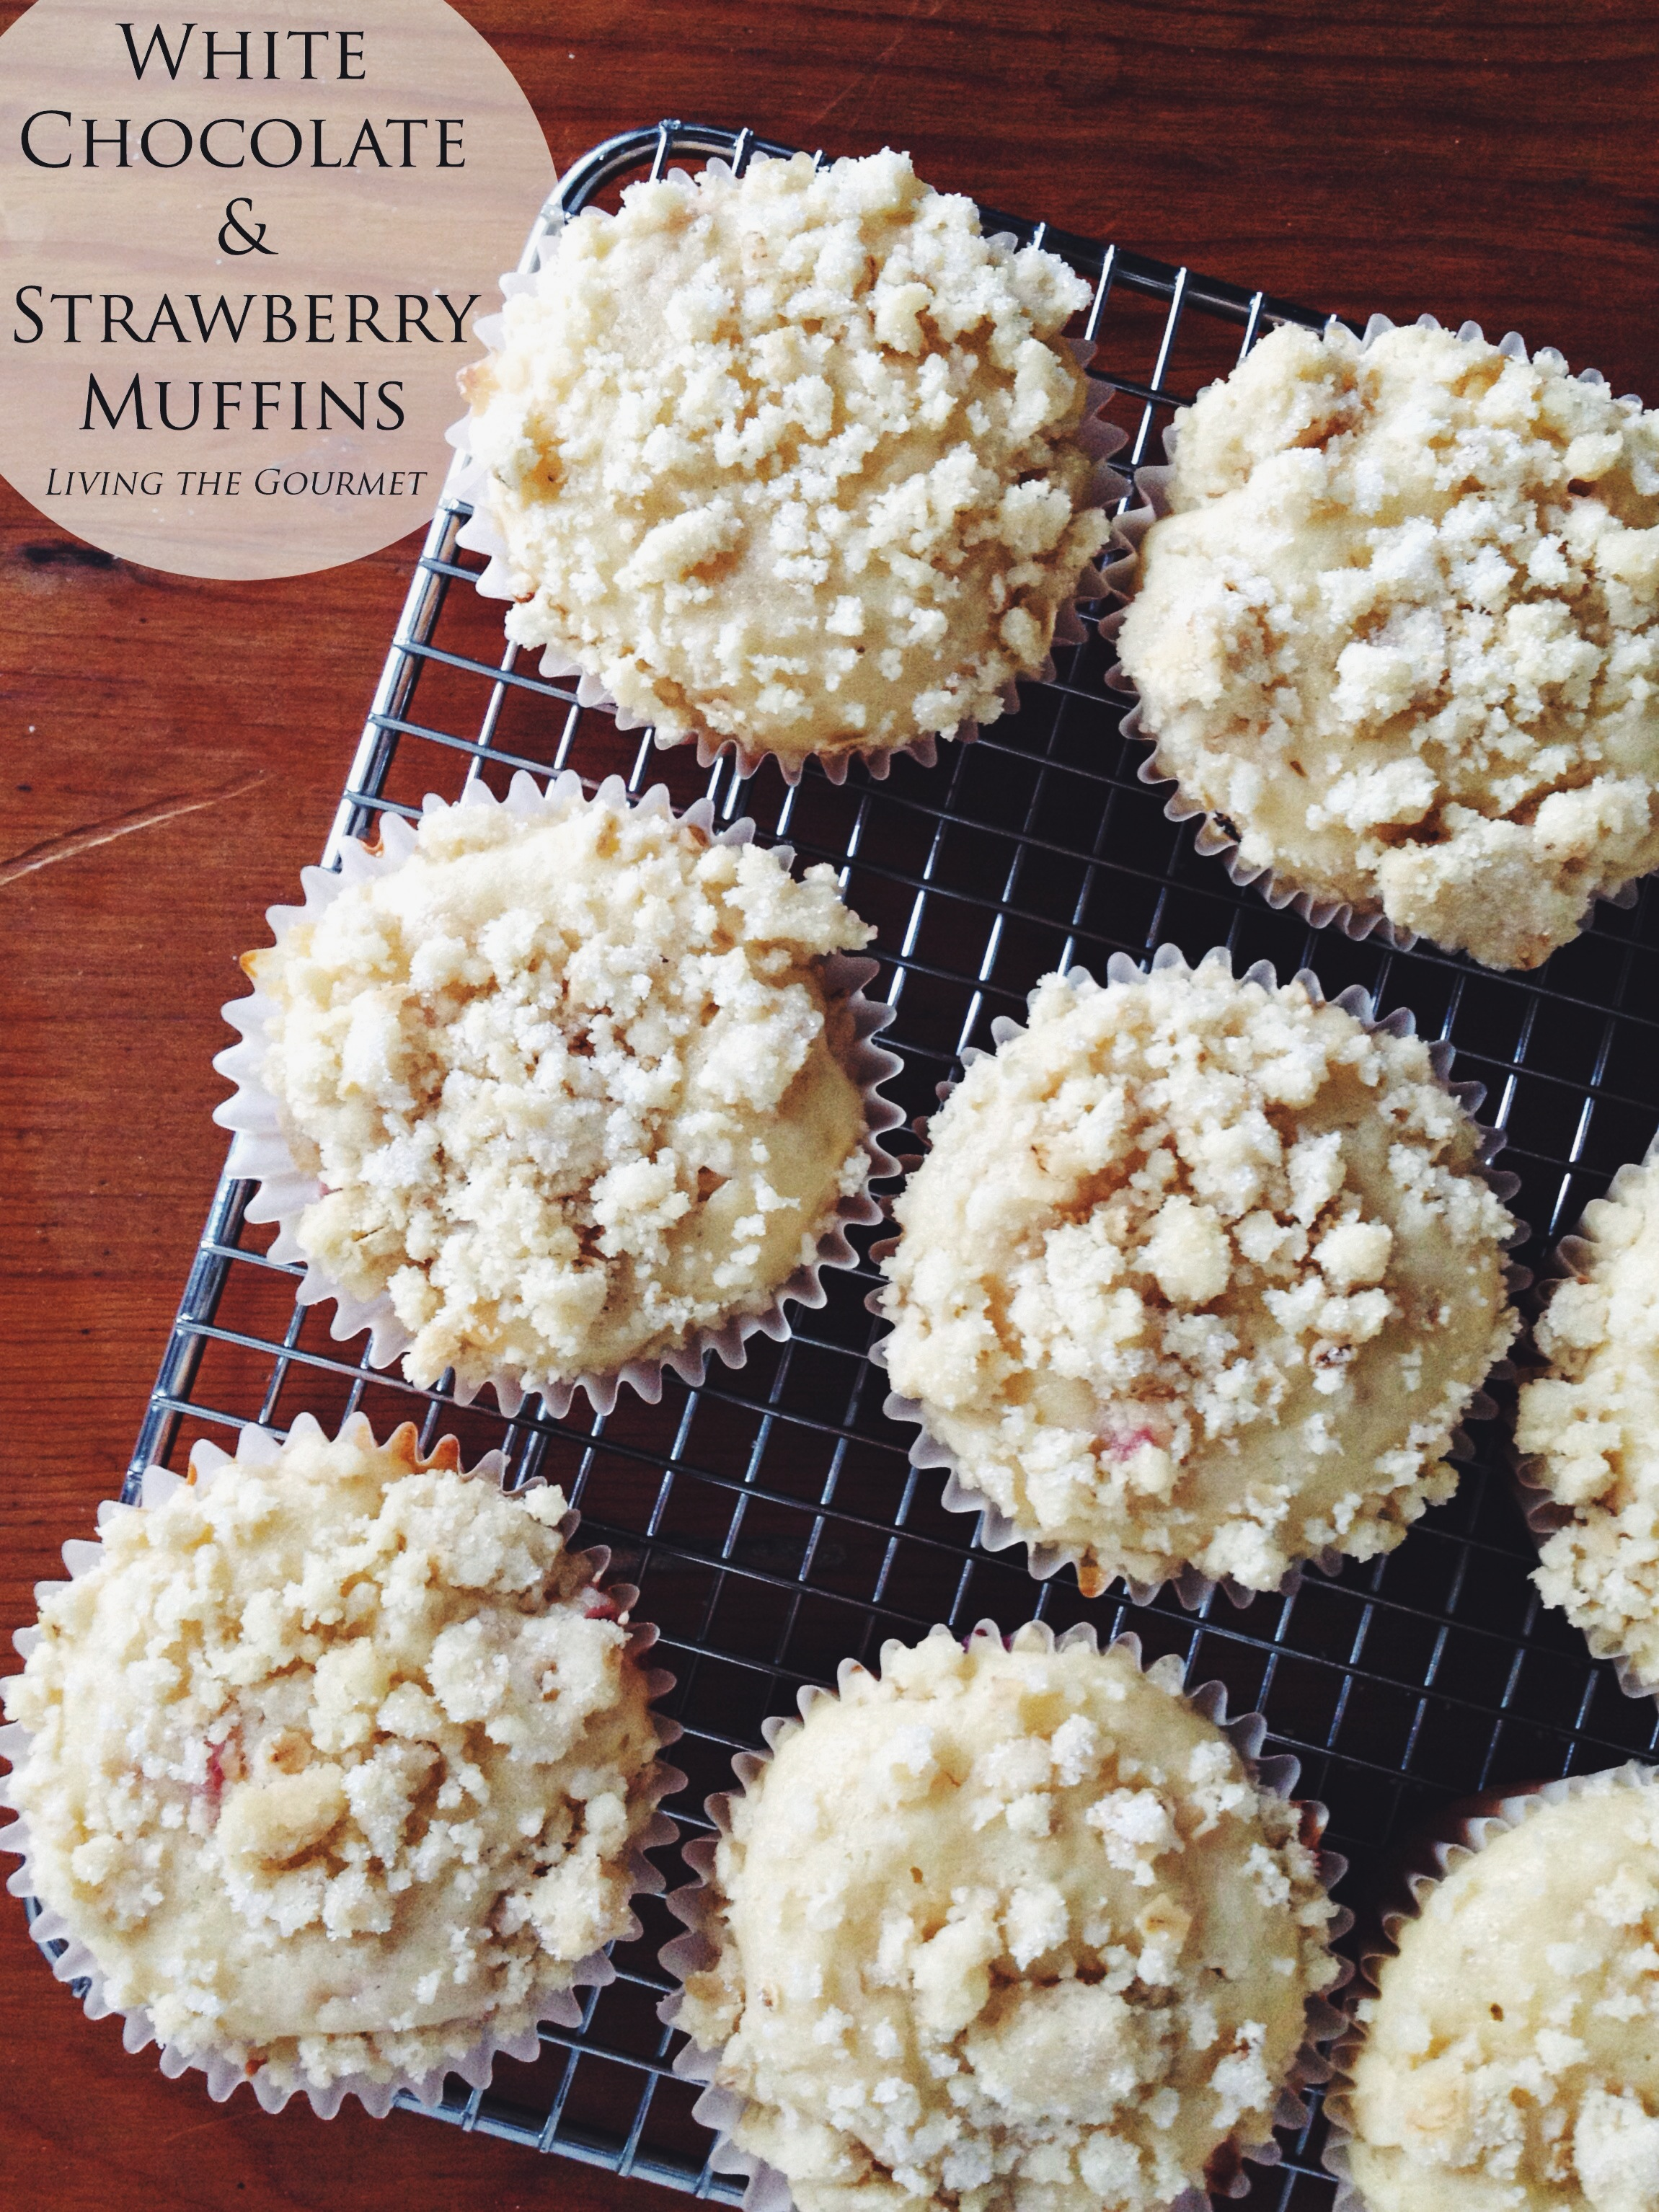 White Chocolate & Strawberry Muffins - Living The Gourmet